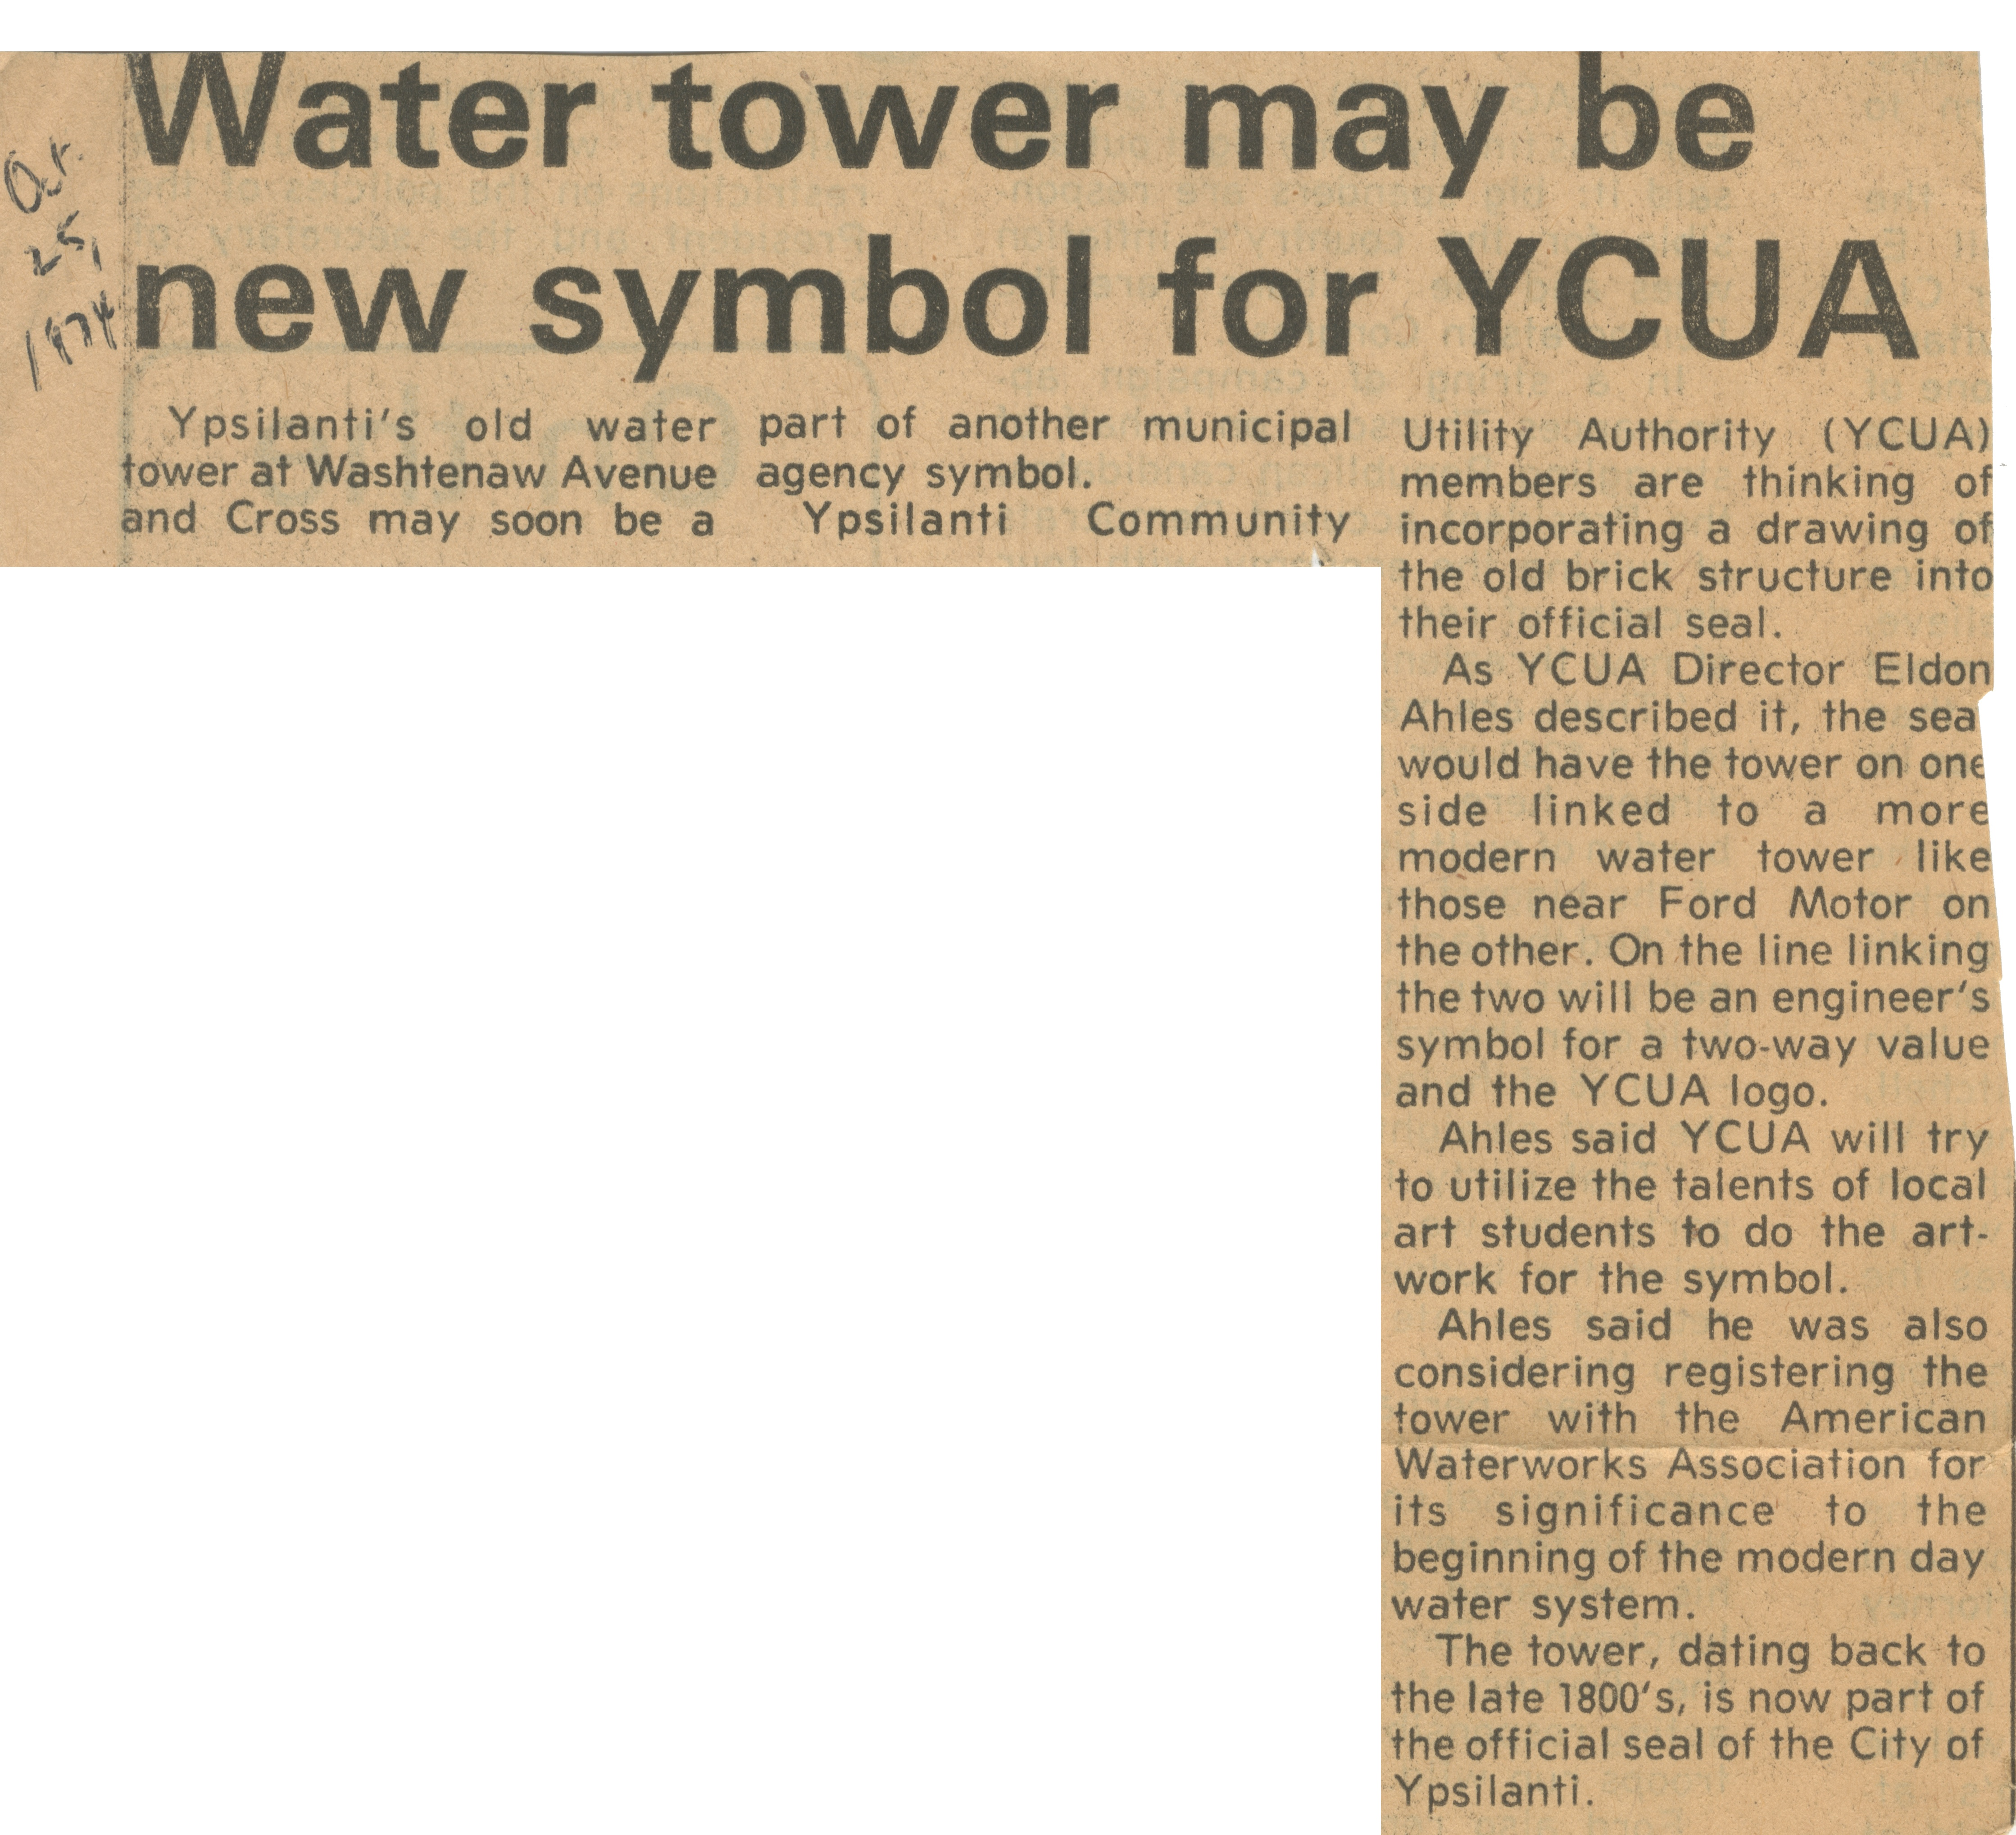 Water tower may be new symbol for YCUA image